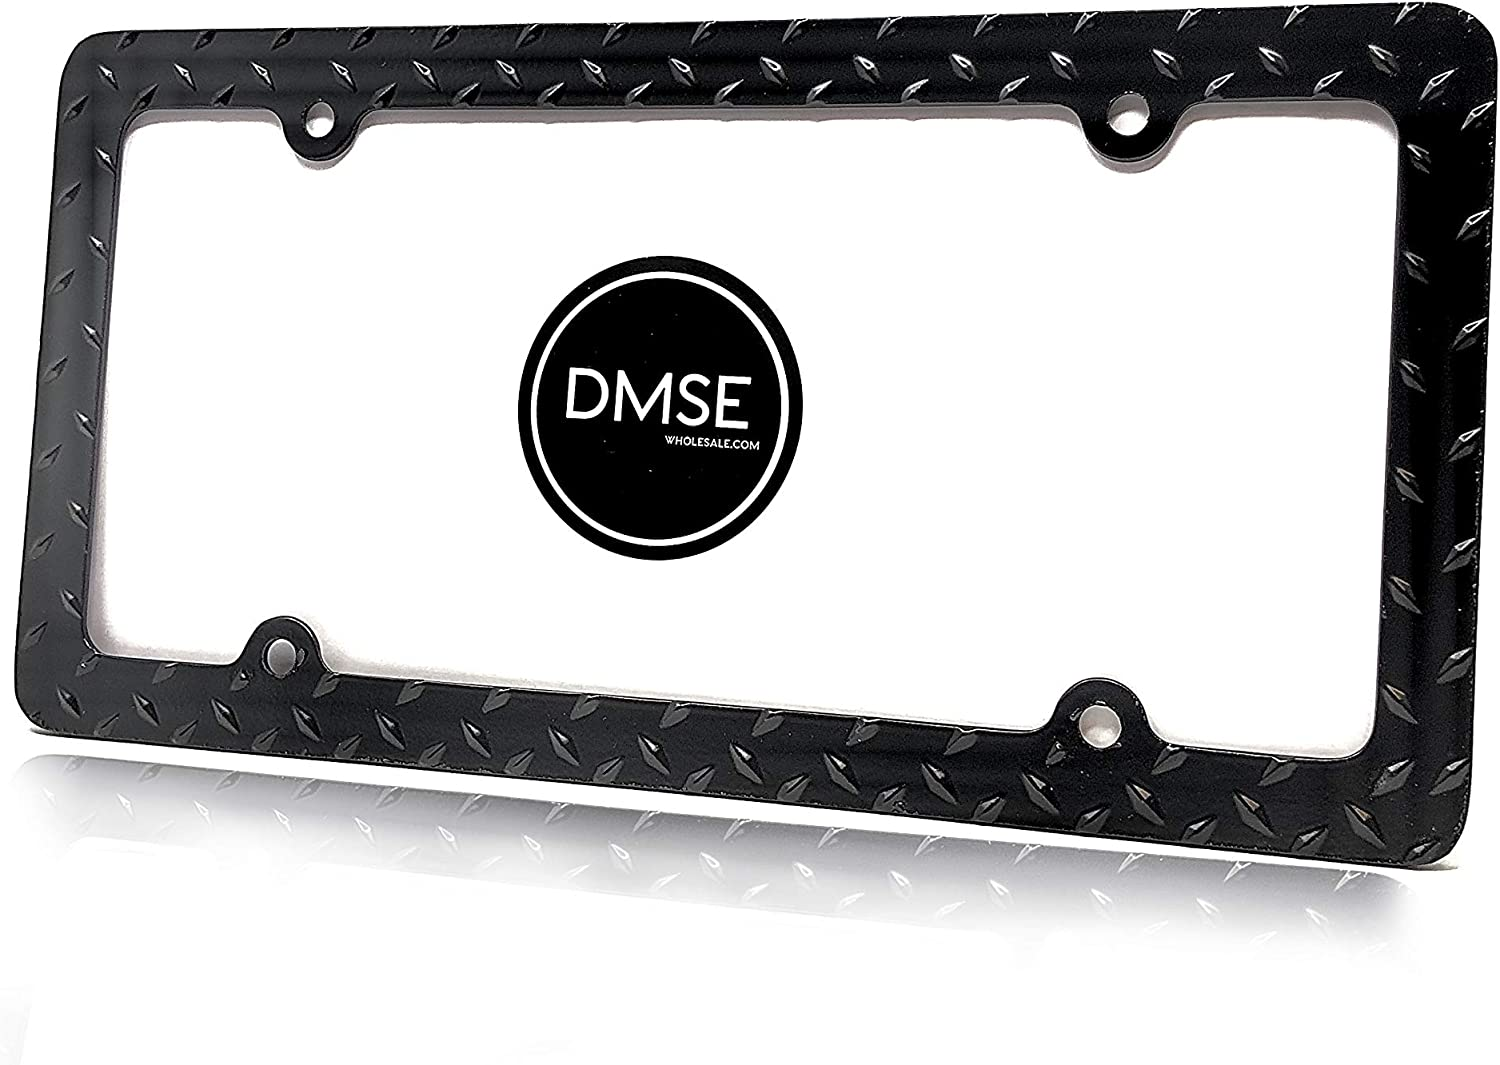 DMSE Heavy Duty Metal Diamond Plate Plated License Plate Frame Cool Decorative Design For Any Vehicle Chrome